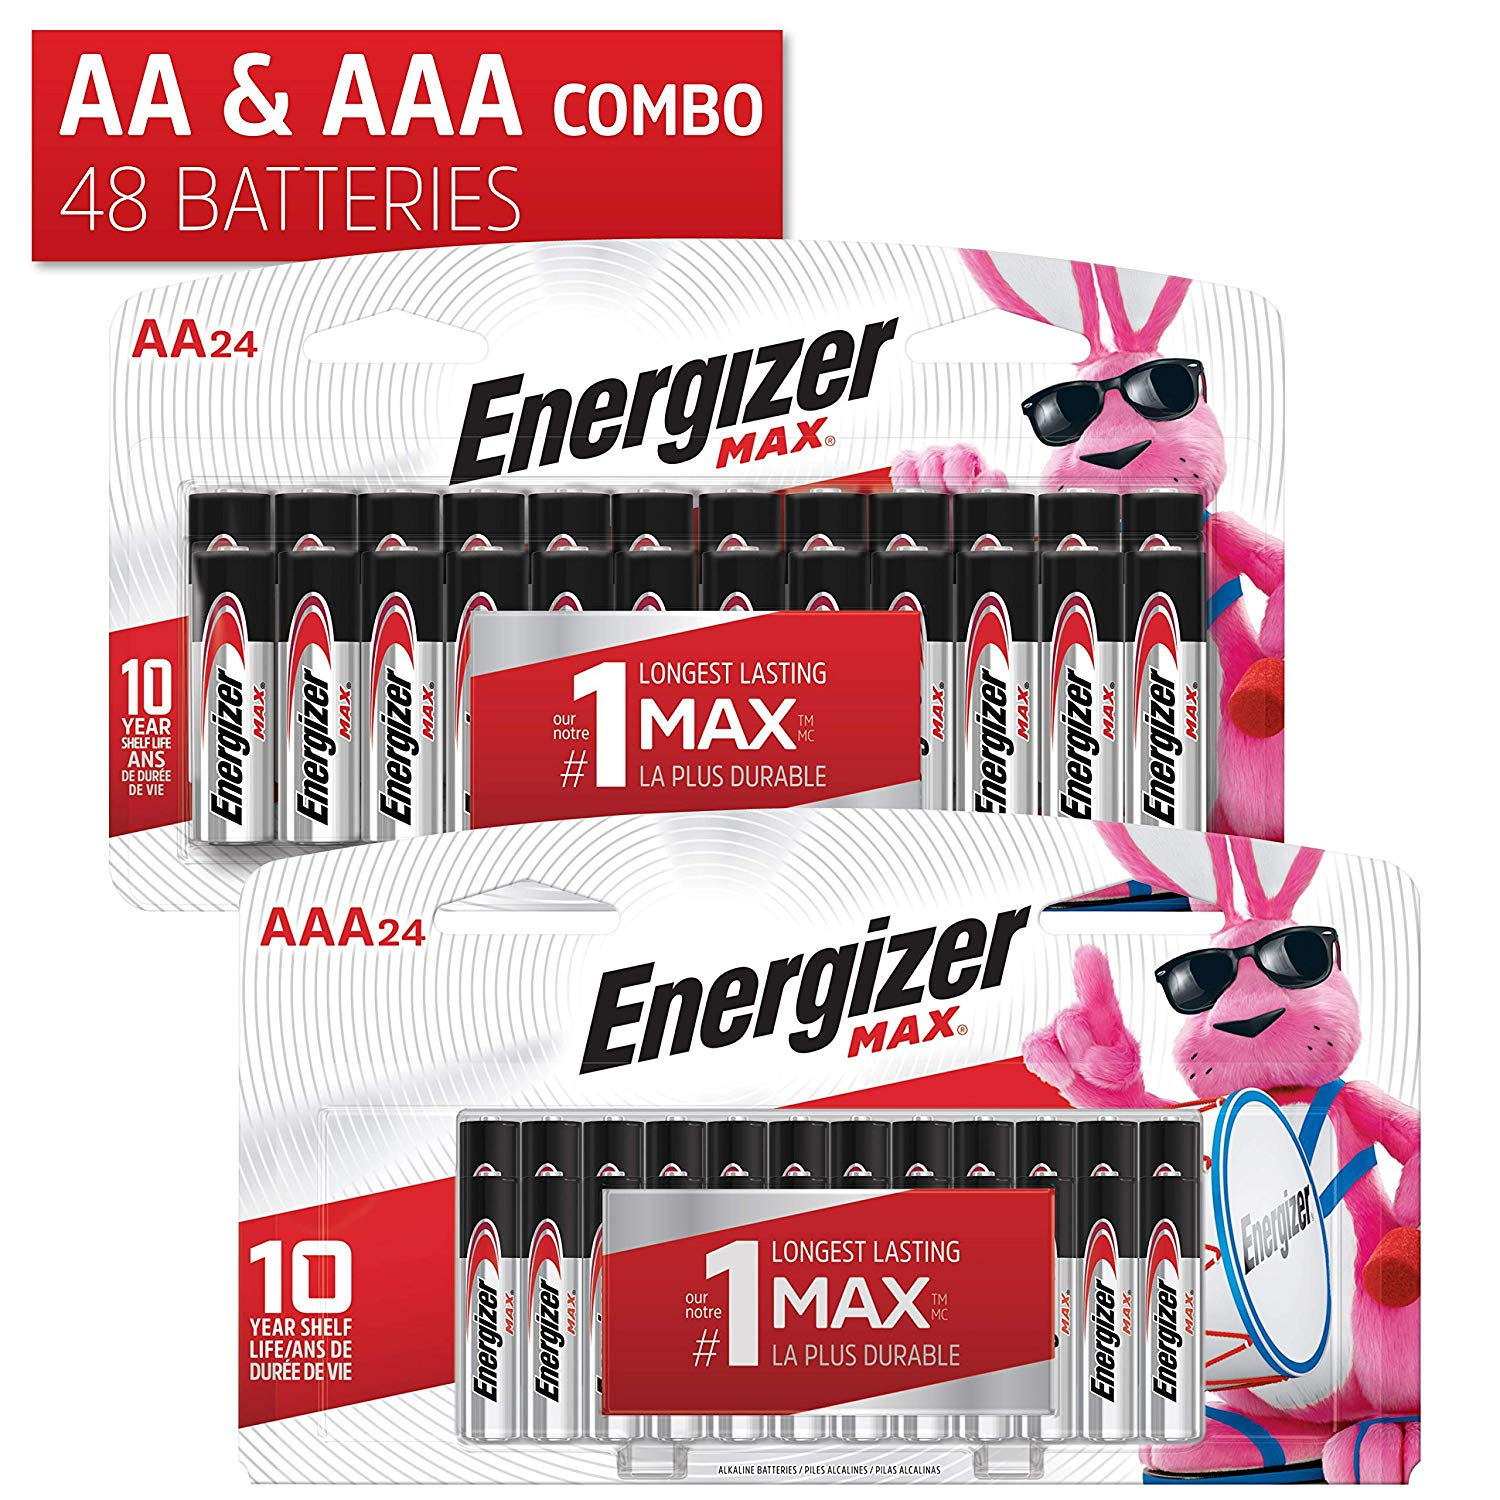 Energizer Combo Pack - 24 AA and 24 AAA